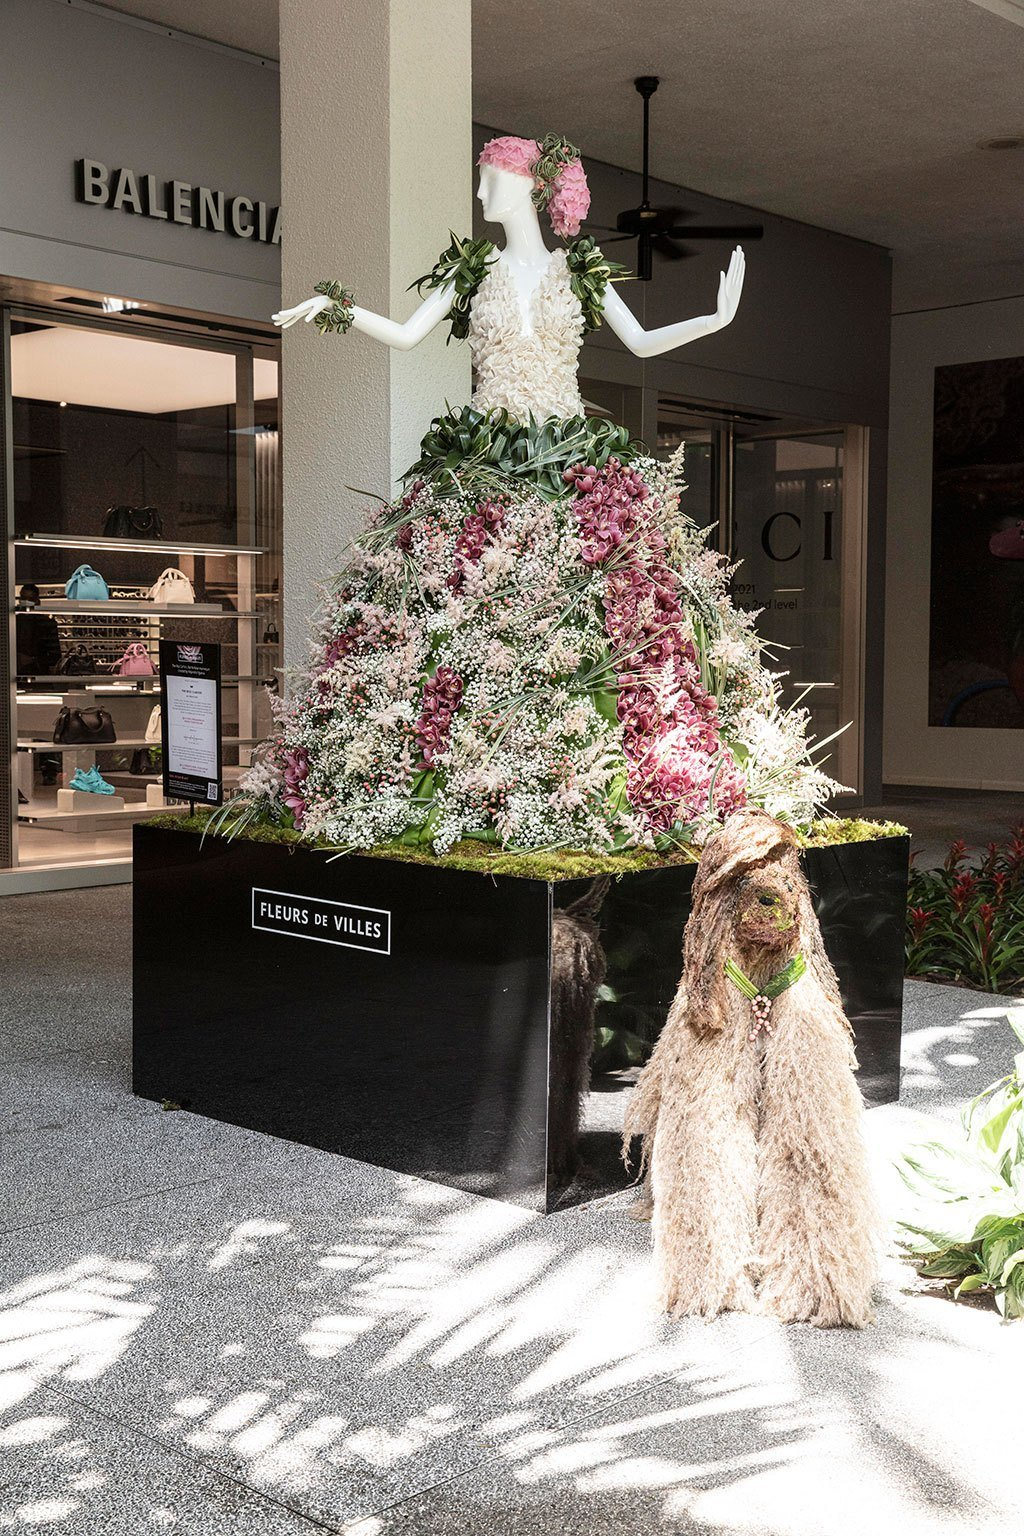 Ritz-Carlton Bal Harbour Mannequin Created by Alejandro Figueira. Photo by Theodora Richter